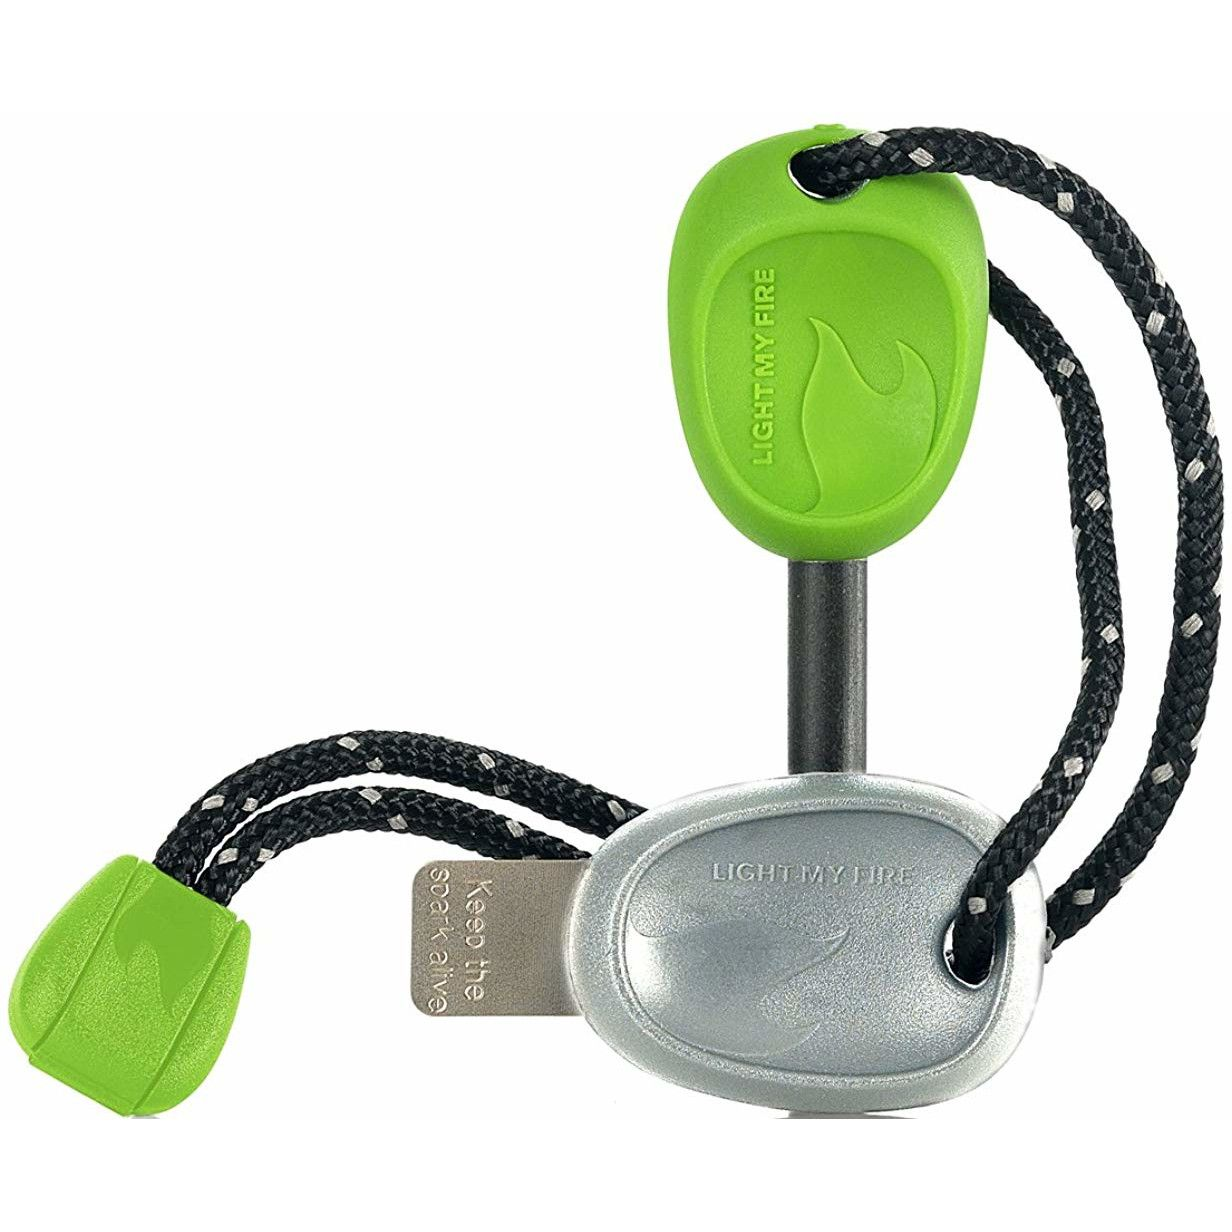 Amnar/Cremene Light My Fire Scout FireSteel 2.0 Verde Fluorescent (Green)